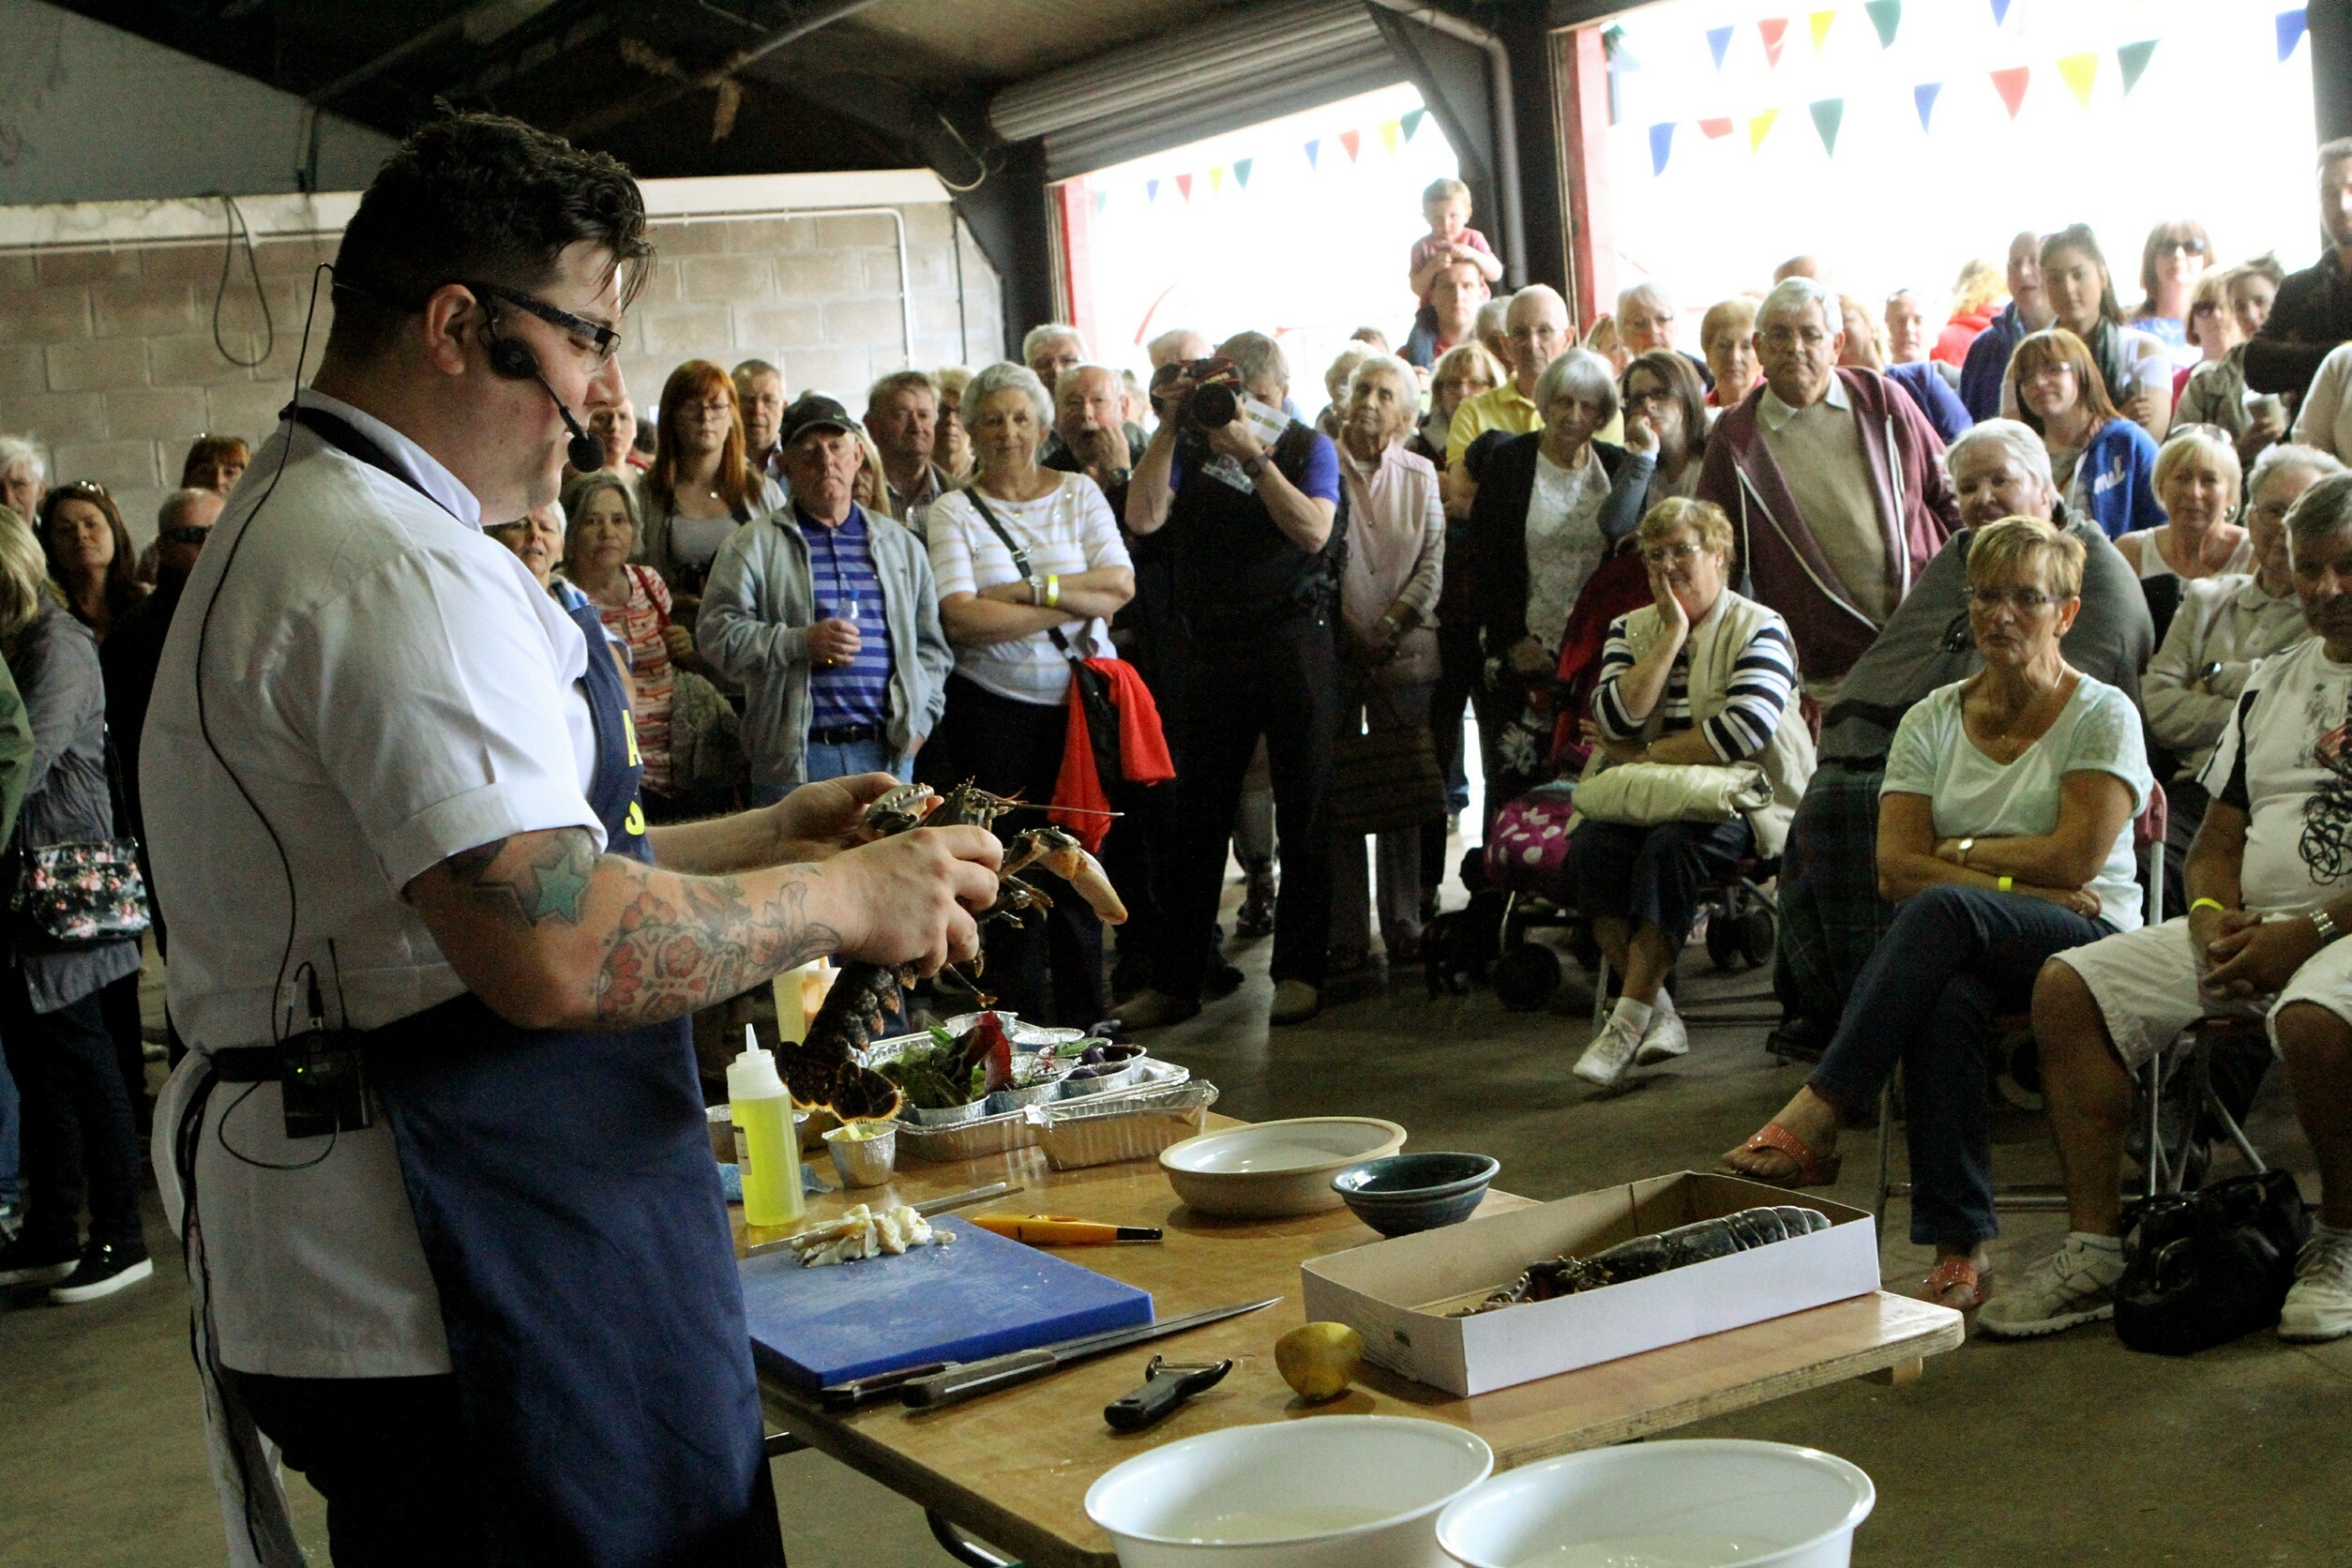 Masterchef The Professionals winner Jamie Scott was among those taking part.